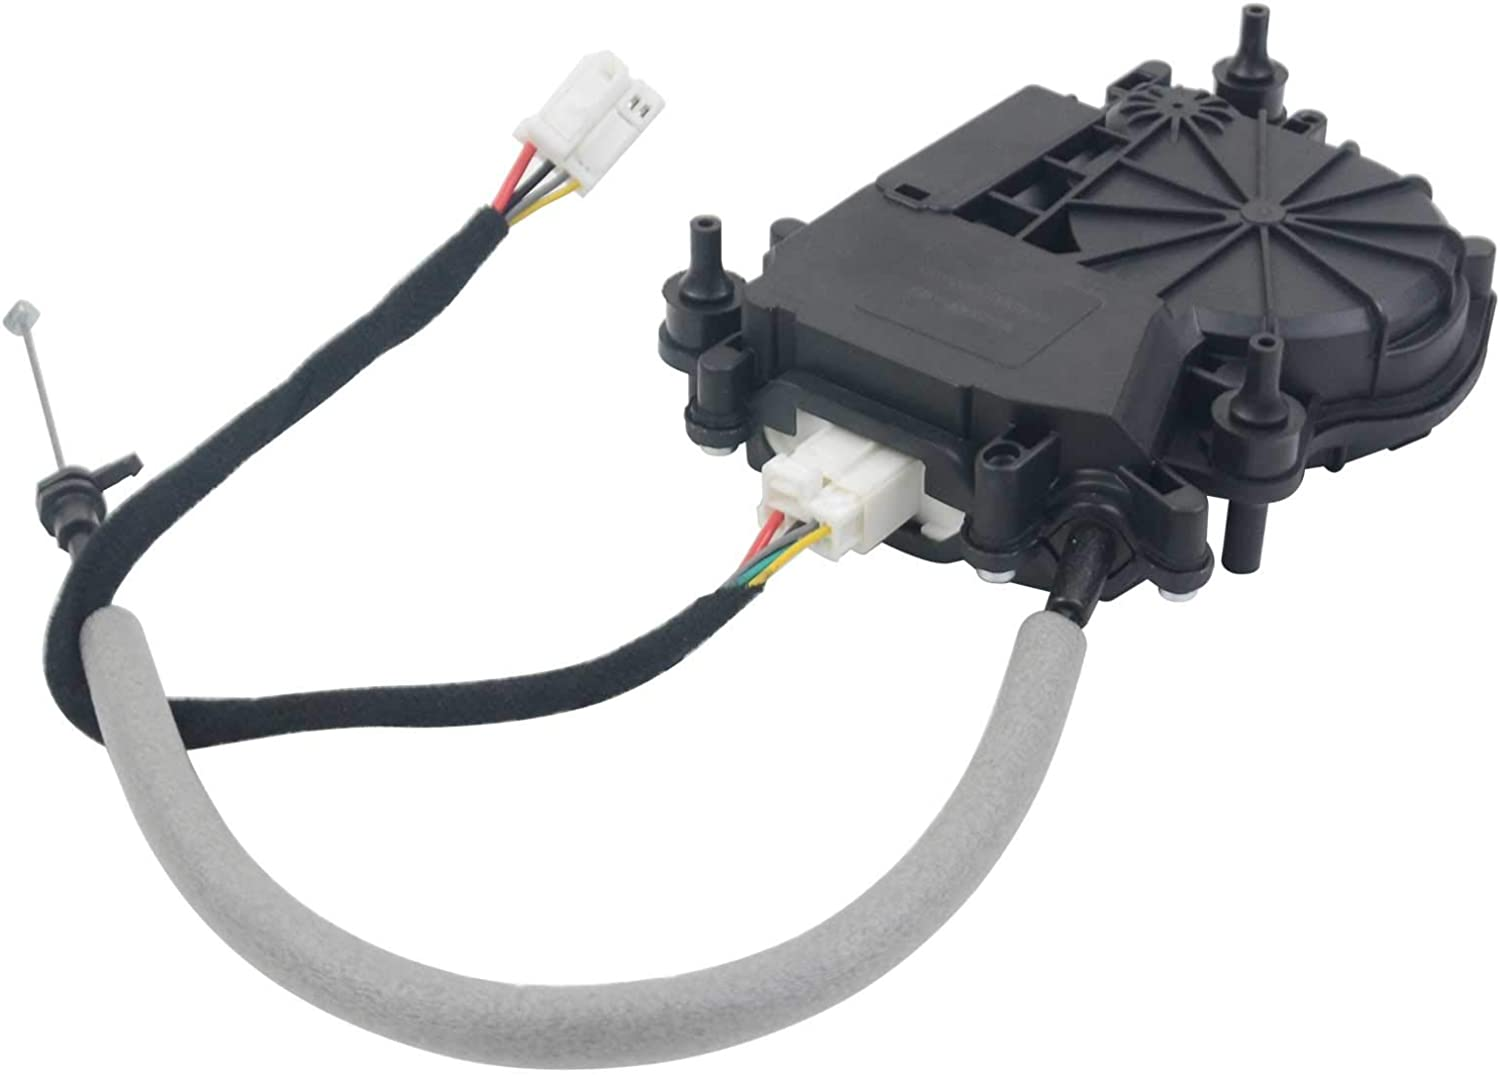 YY-US Rear Ranking TOP5 Trunk Lid Power Mechanism Lock for 51247303443 National uniform free shipping Drive